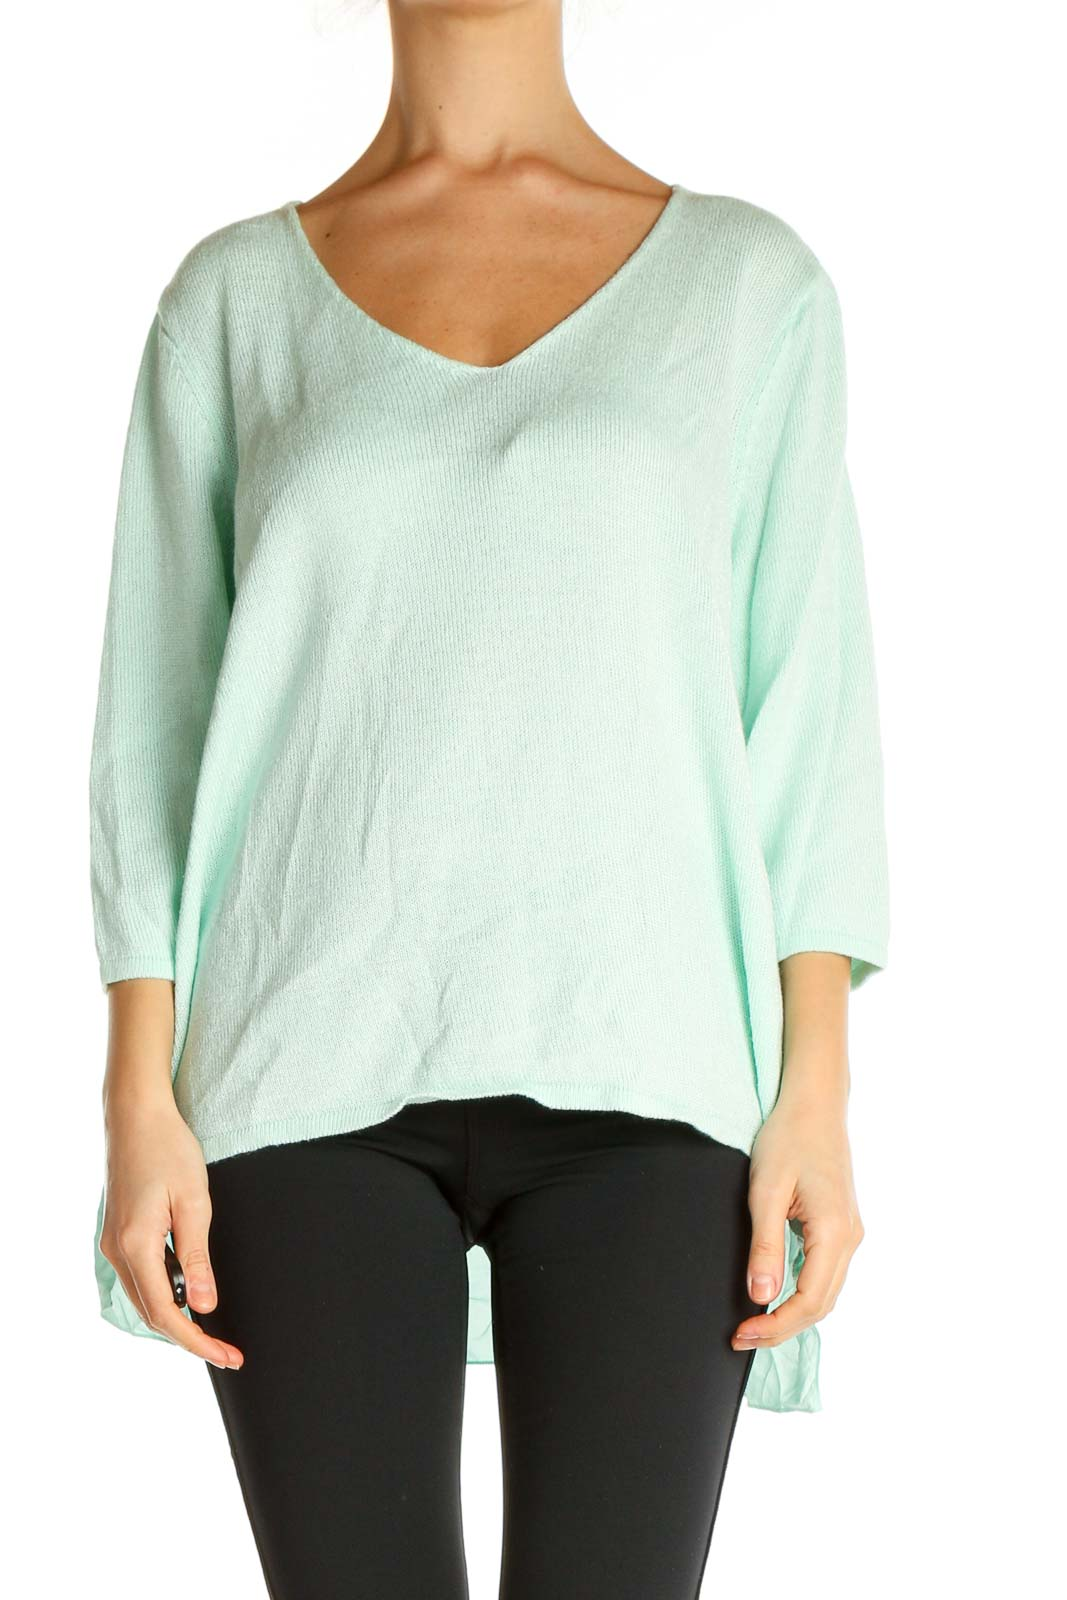 Green Solid All Day Wear Sweater Front